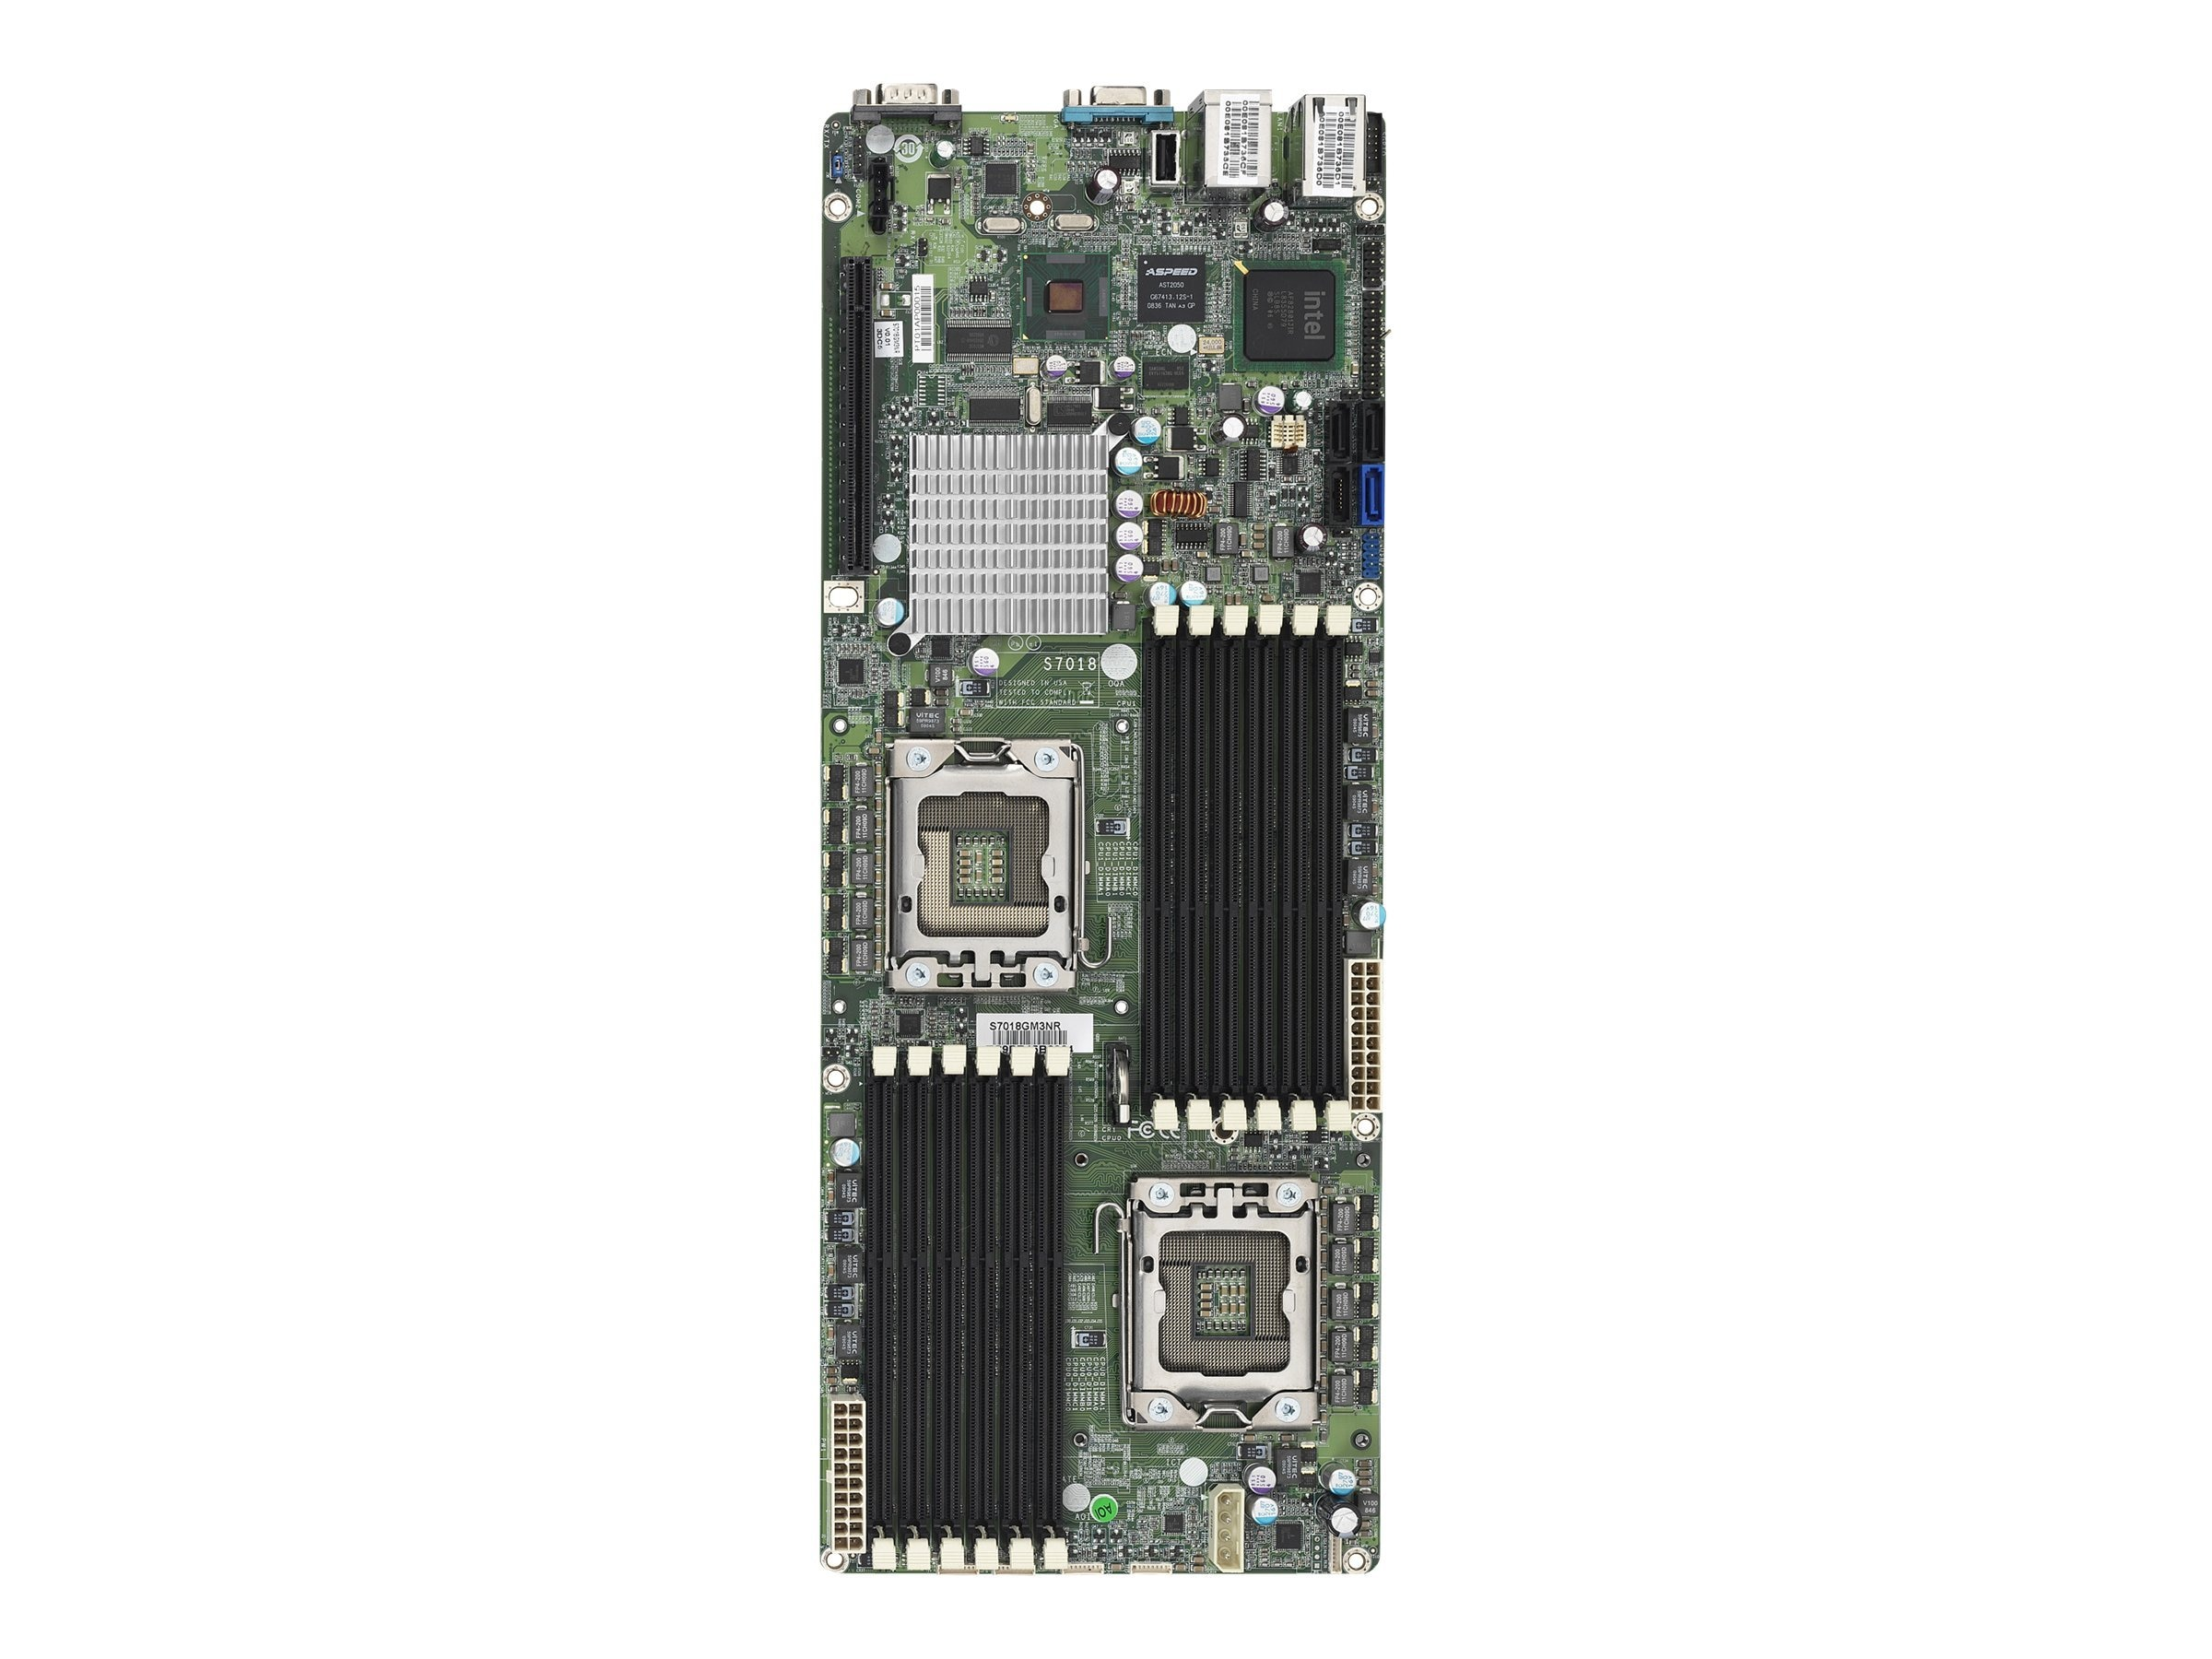 Tyan Motherboard, Intel 5500, Dual Xeon 5500, Proprietary, Max 96GB DDR3, PCIEX16, 3GBE, Video, SATA